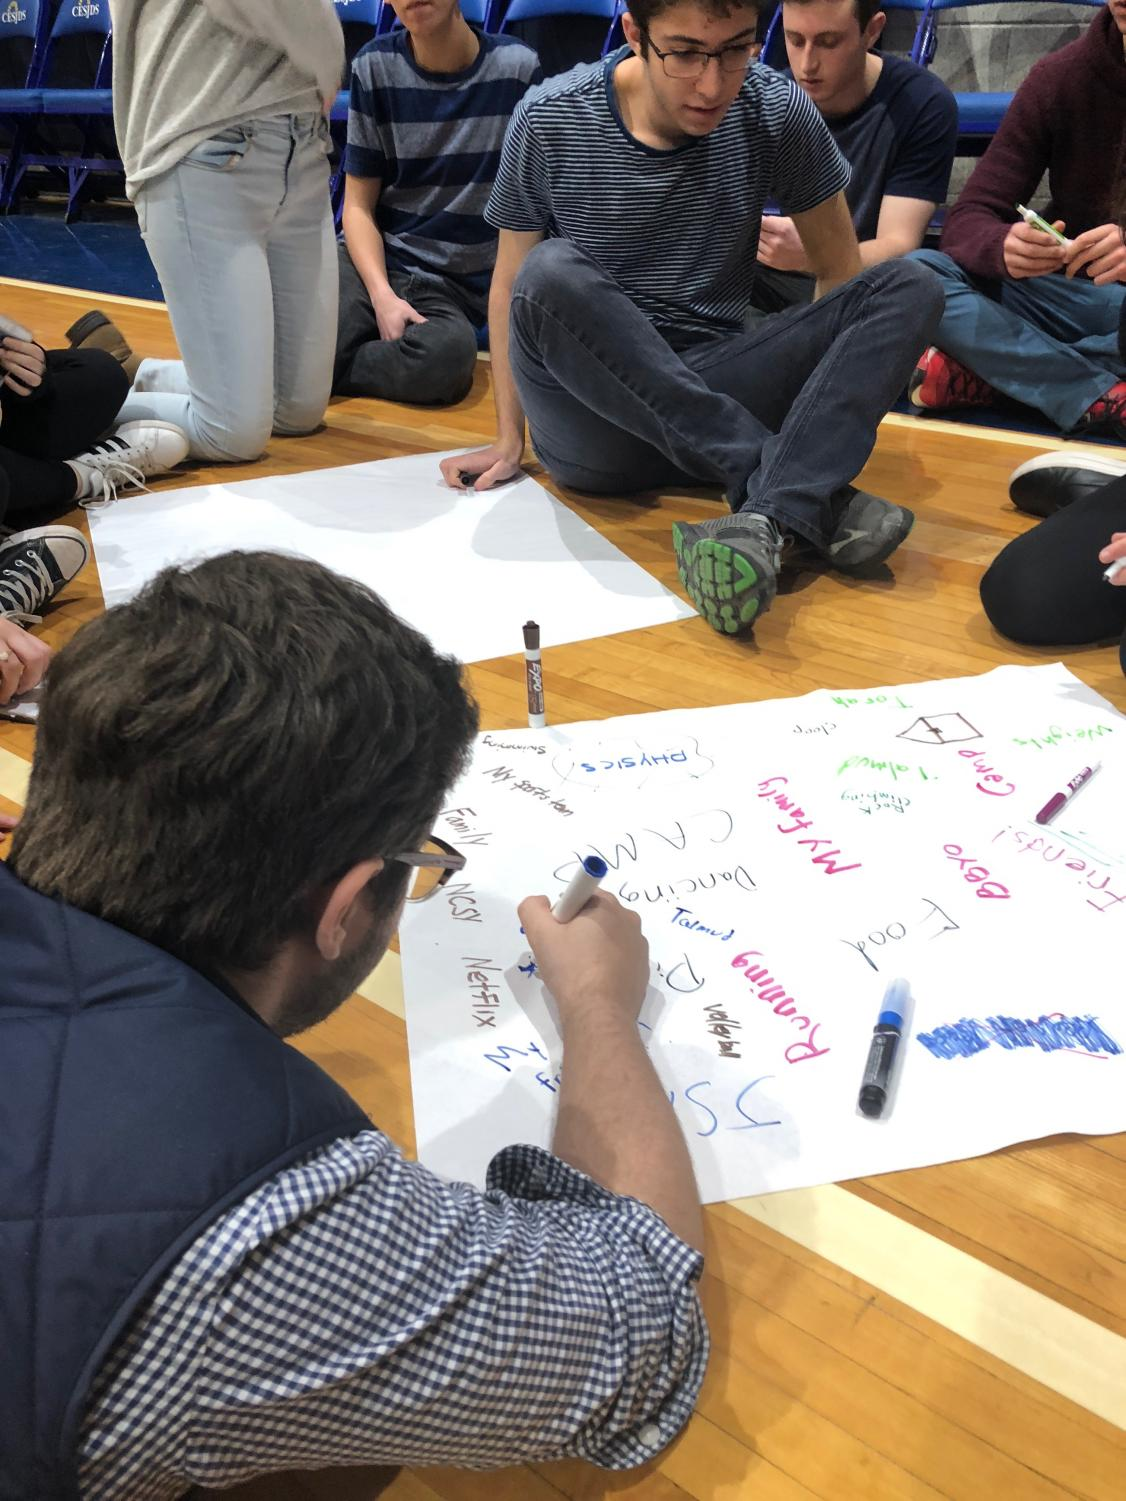 During the workshop, juniors write down what makes them feel supported. Umttr strives to raise awareness about mental health through activities that come to some sort of positive conclusion, such as this one.